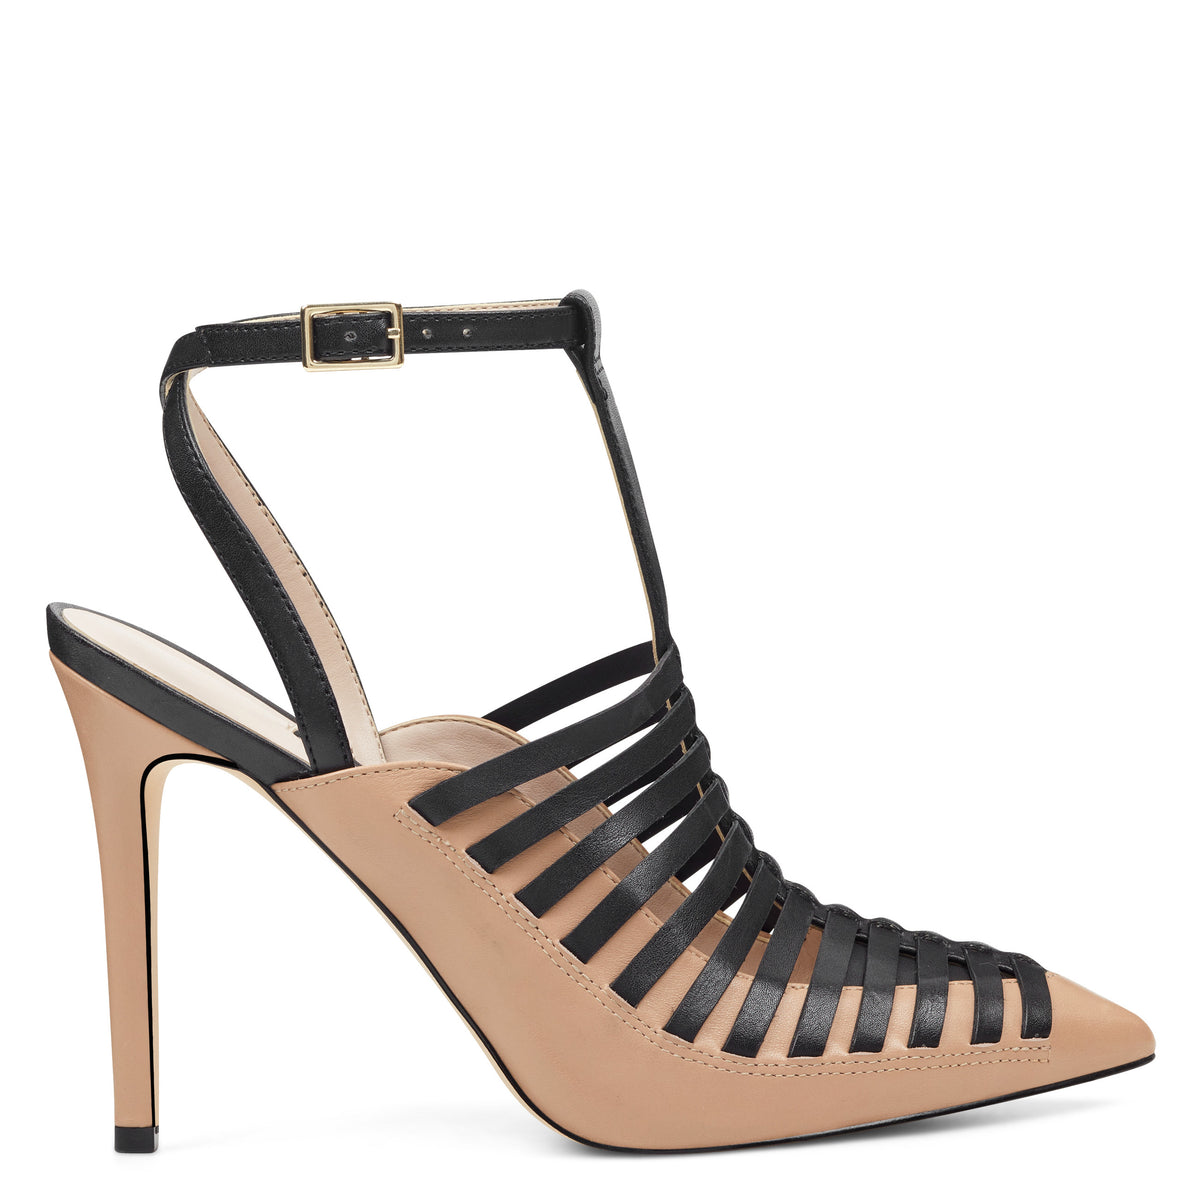 Tlank Strappy Pumps